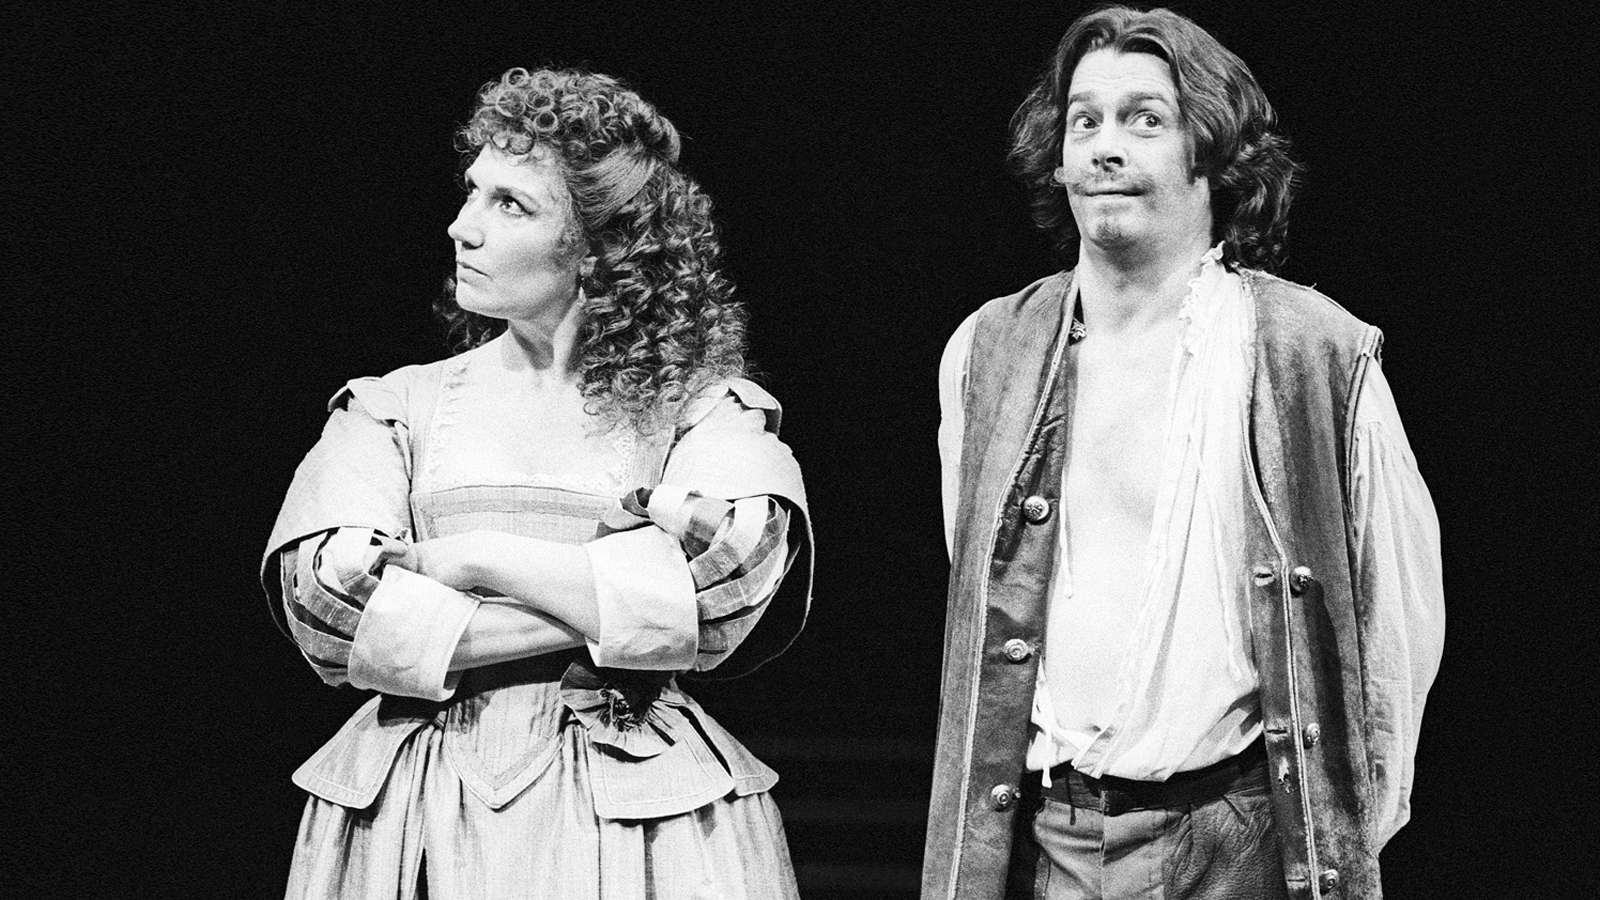 Benedick and Beatrice: the 'merry war' of courtship